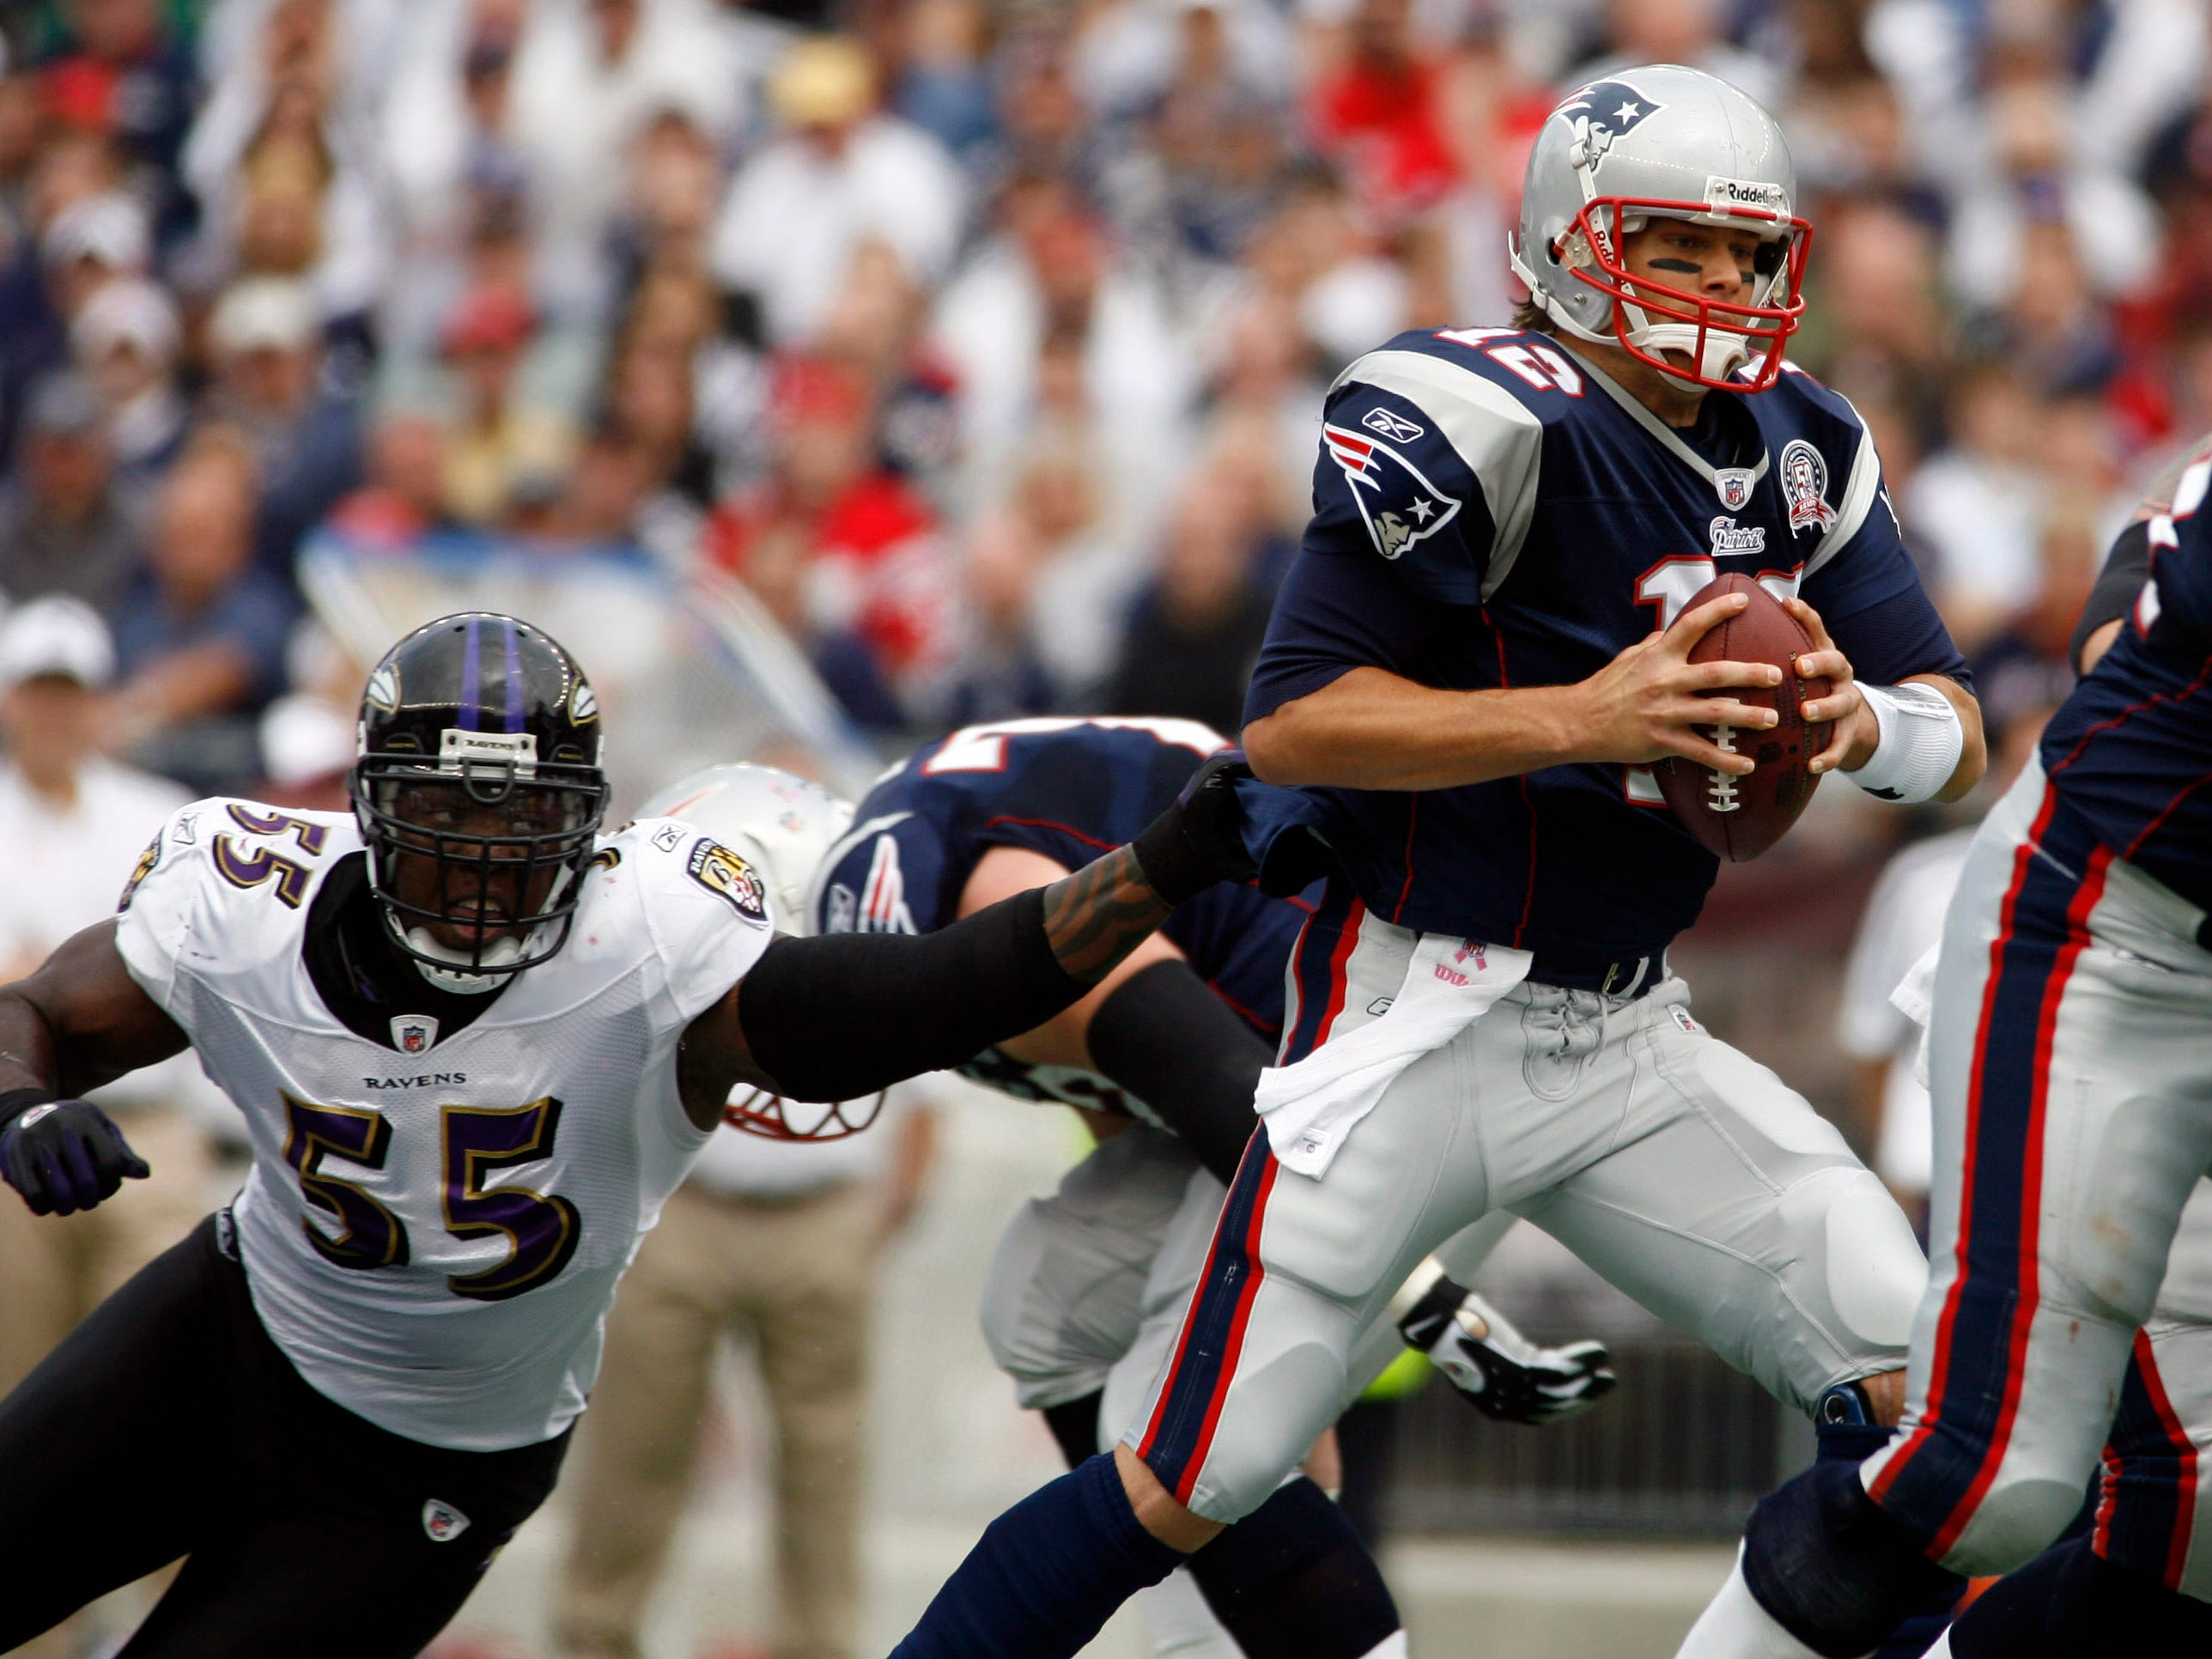 New England Patriots quarterback Tom Brady (12) escapes a sack attempt by Baltimore Ravens linebacker Terrell Suggs (55) during the first half at Gillette Stadium.